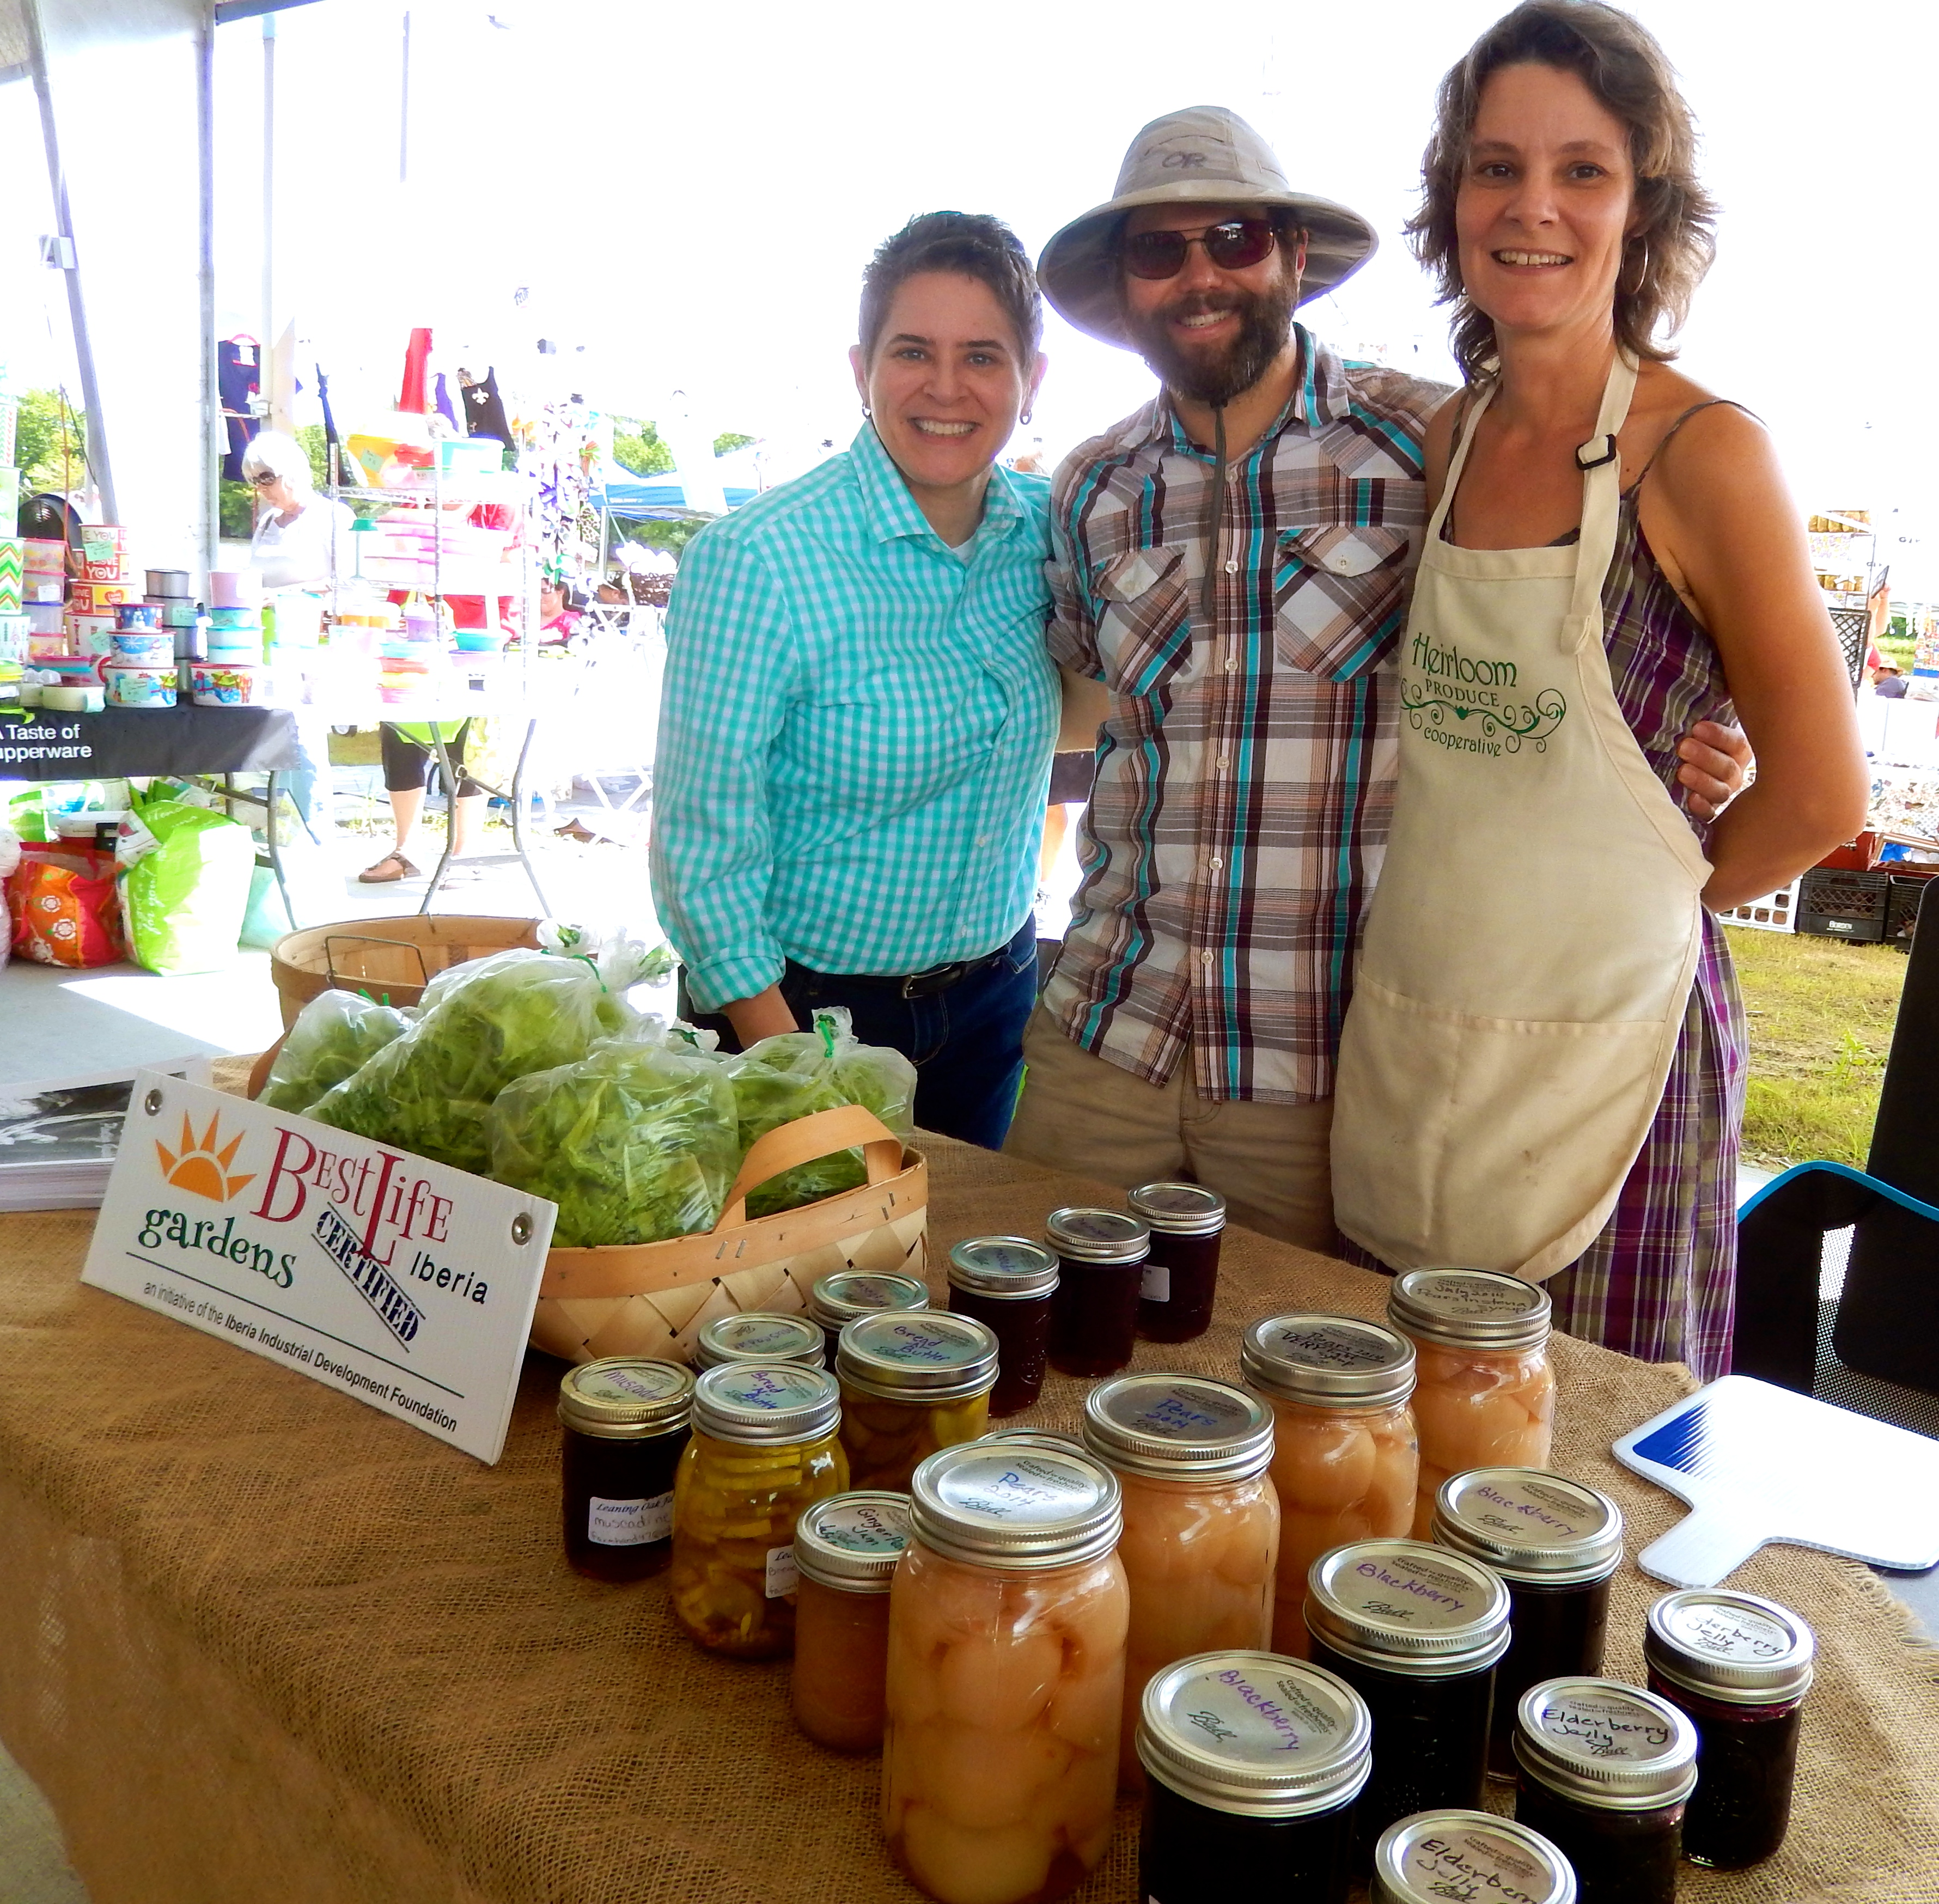 Challenge Grant in the News: New waterfront seafood & farmers market